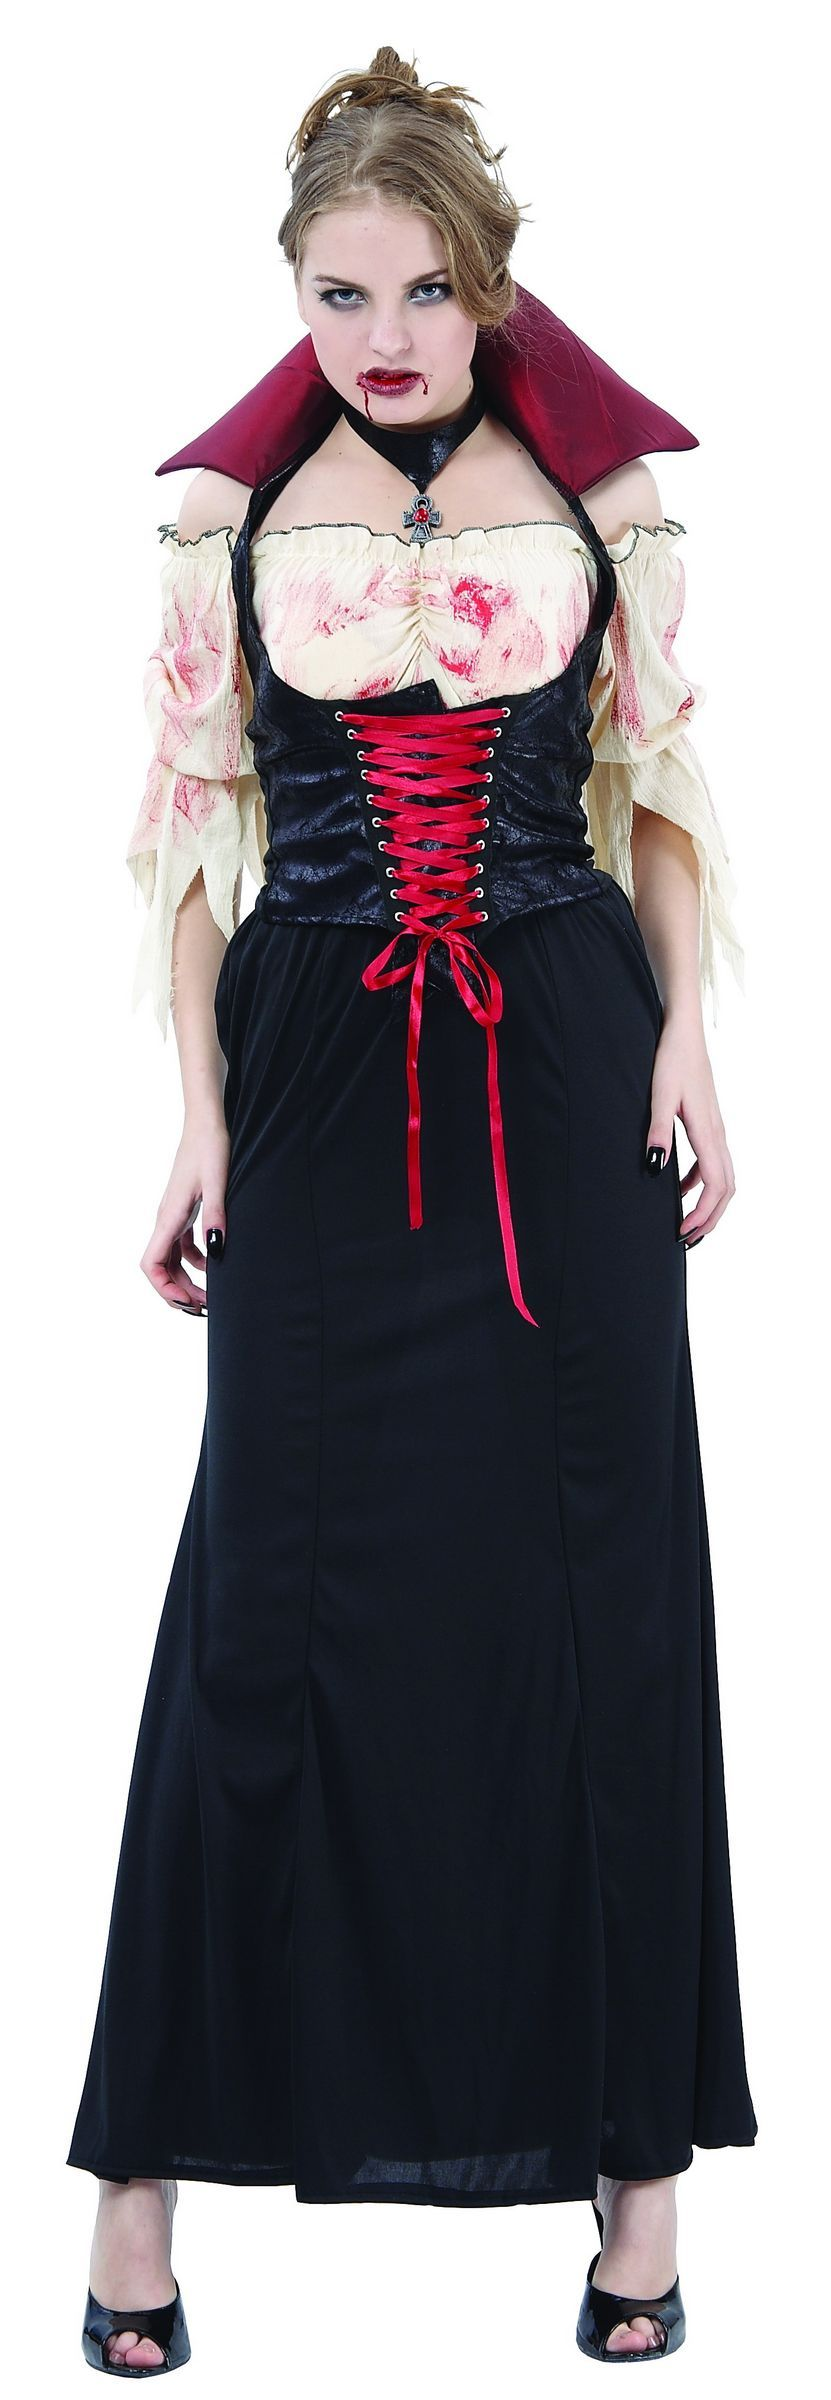 Elegant vampire costume for women Adults Costumes,and